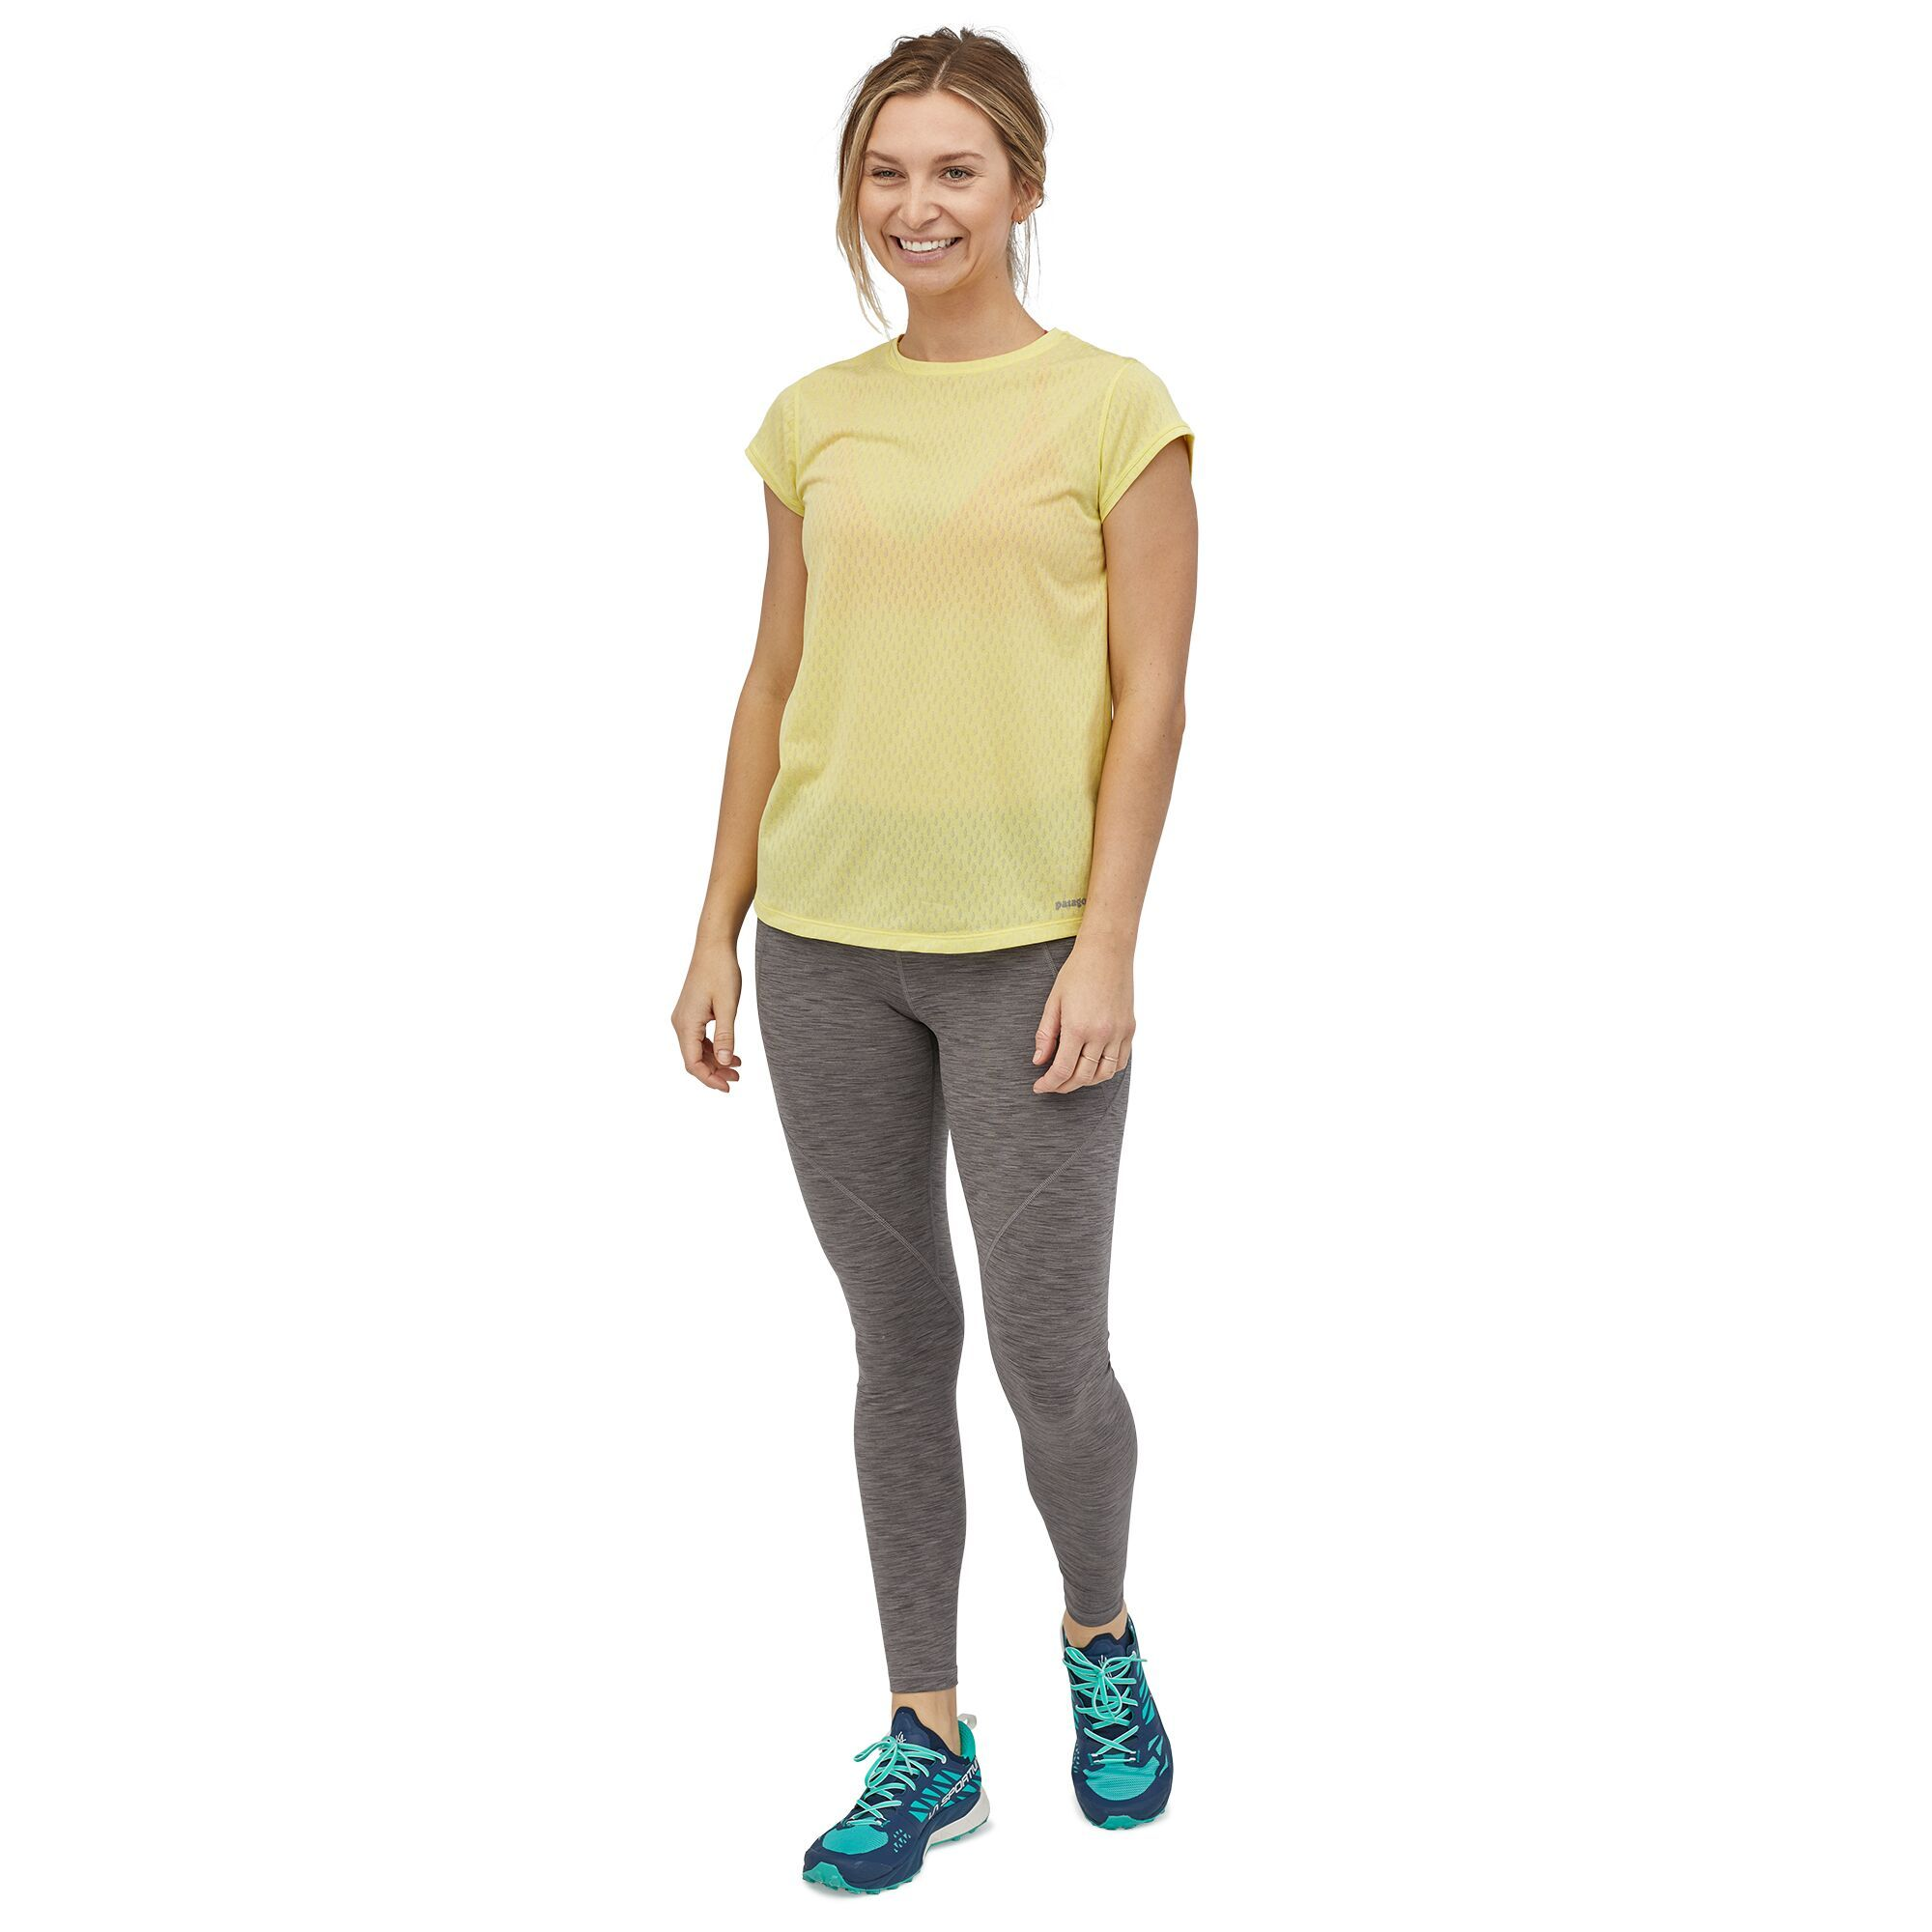 Patagonia - Centered Tights - Recycled Polyester - Weekendbee - sustainable sportswear